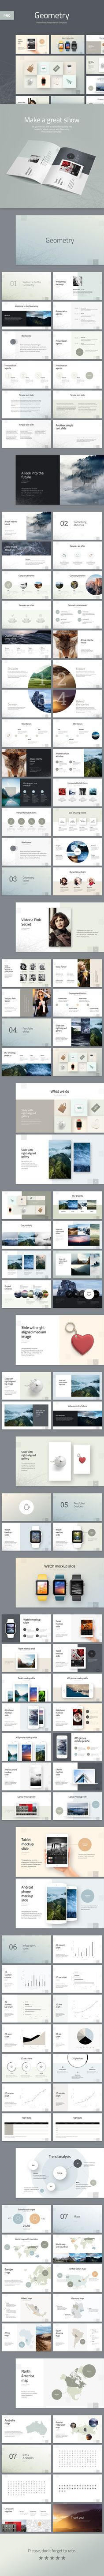 A4 Pitch Deck Vertical Keynote Template | Cleaning companies ...